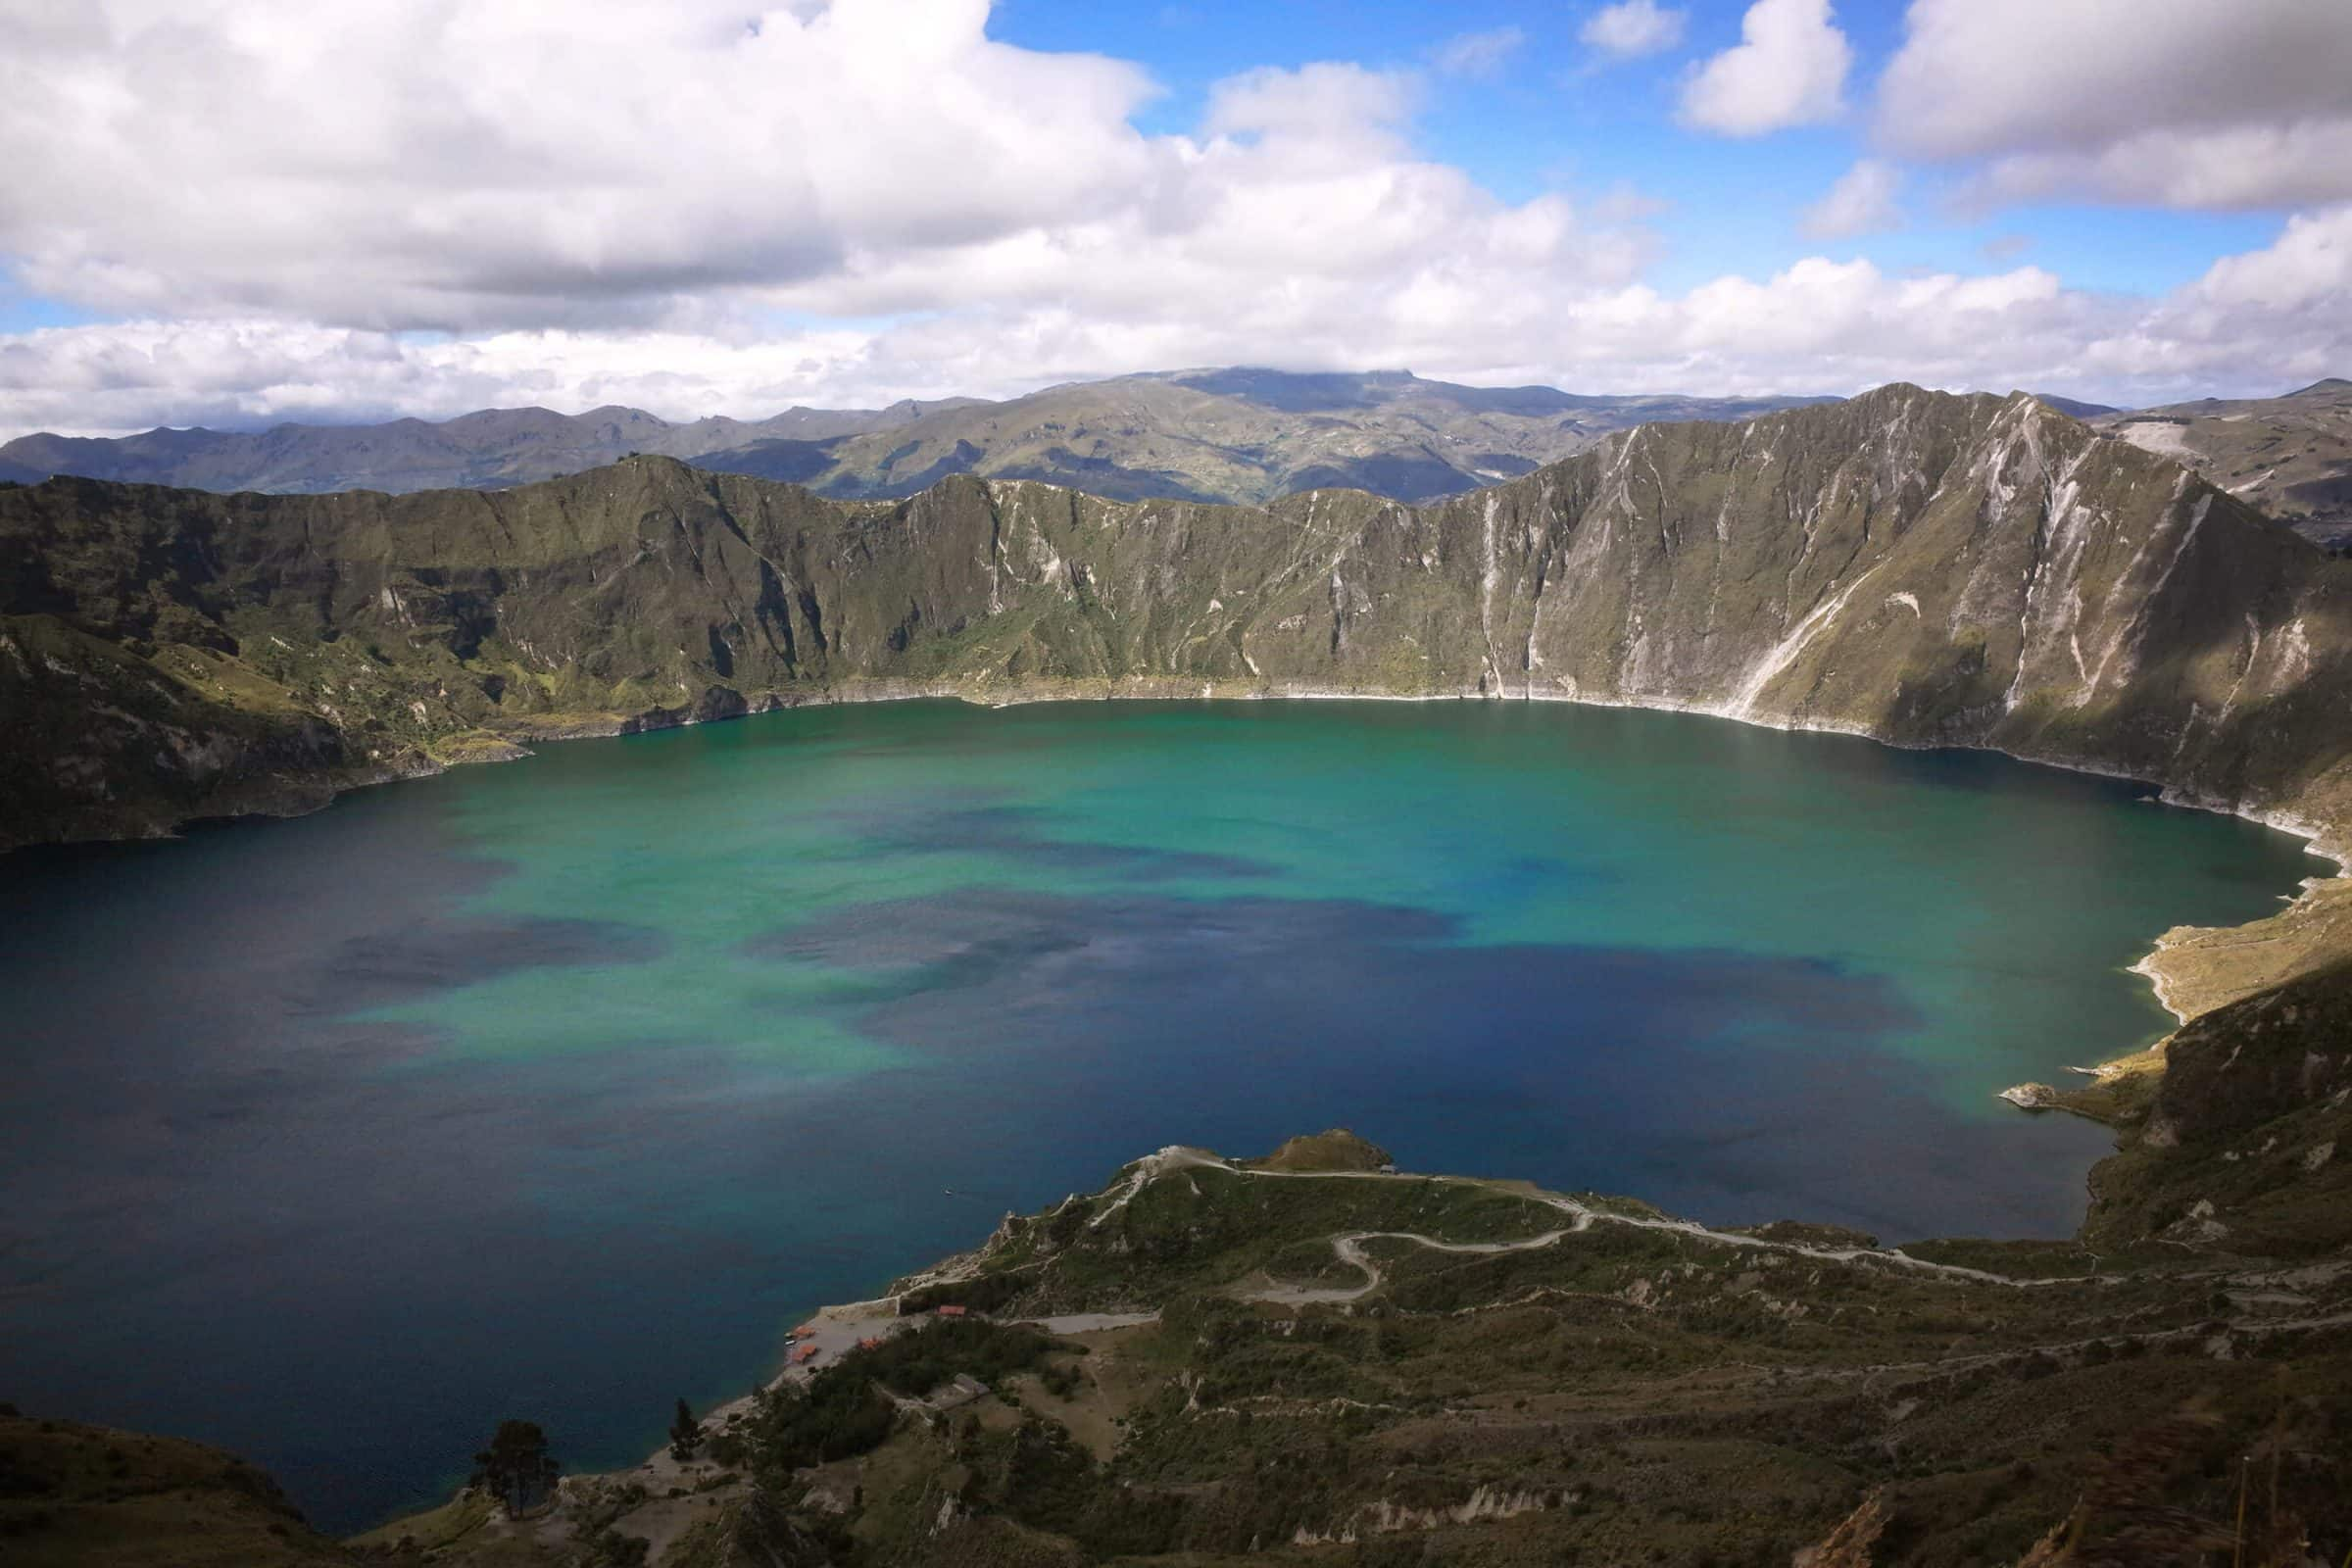 Quilotoa camping: tips and recommendations